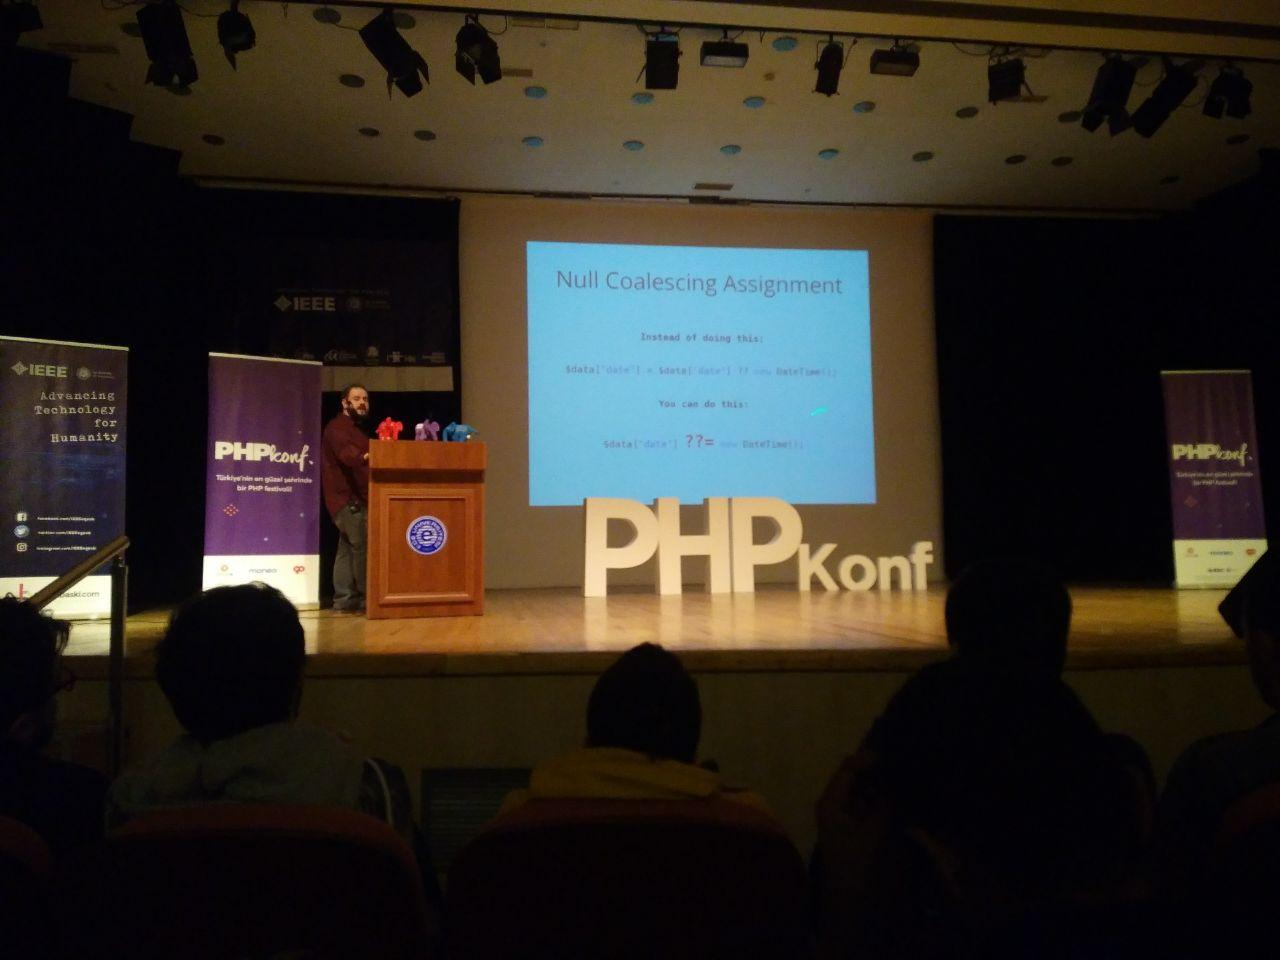 phpkonf